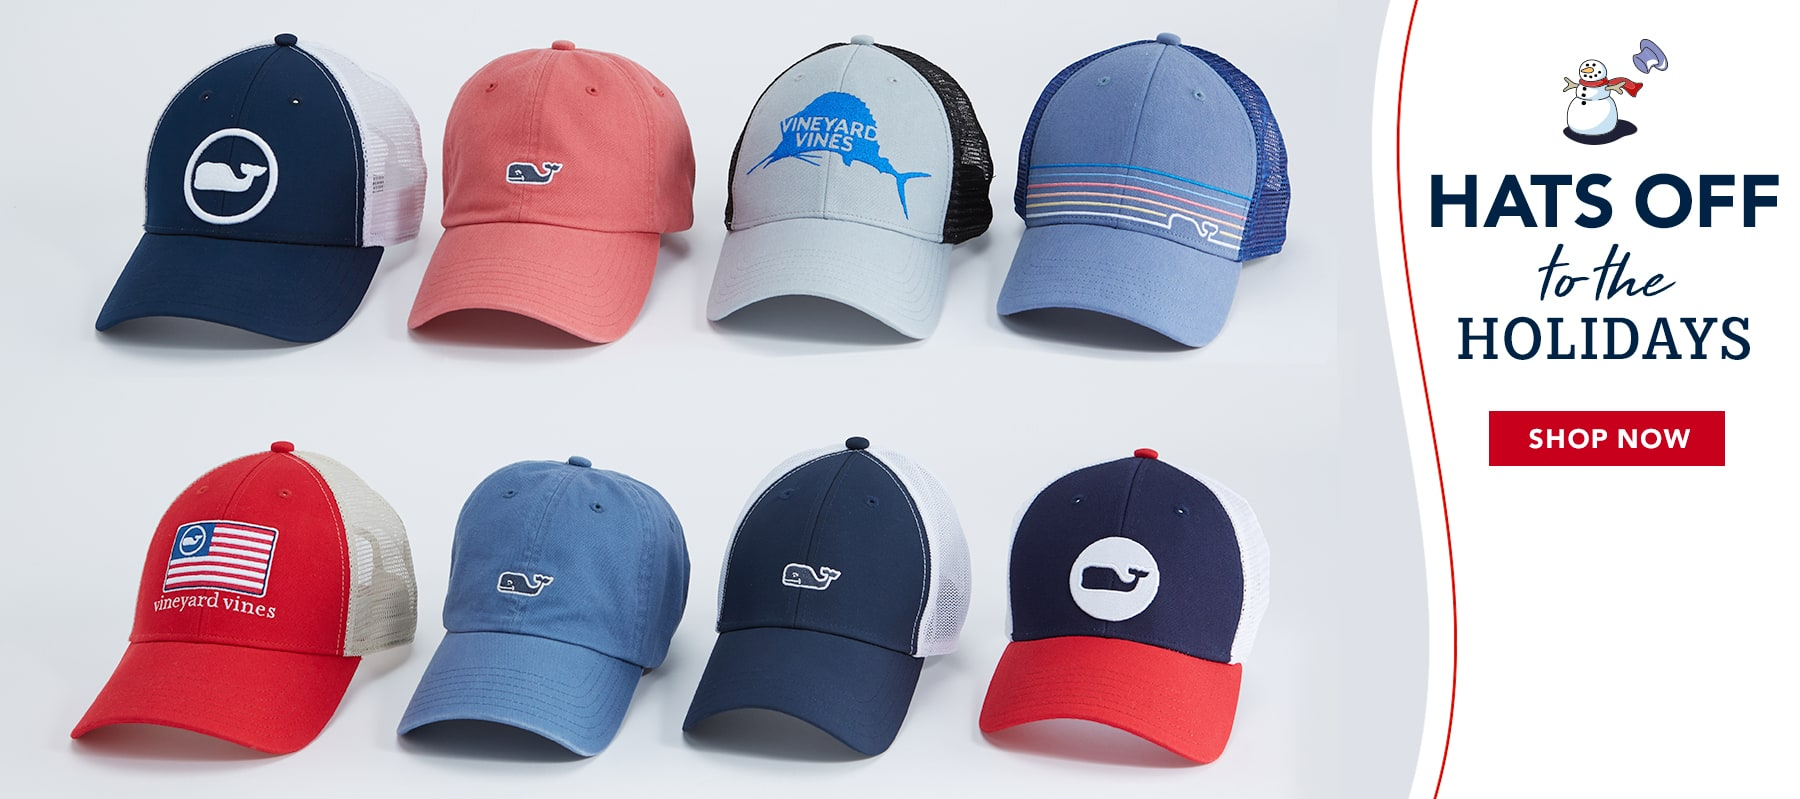 Hats off to the holidays. Shop now.